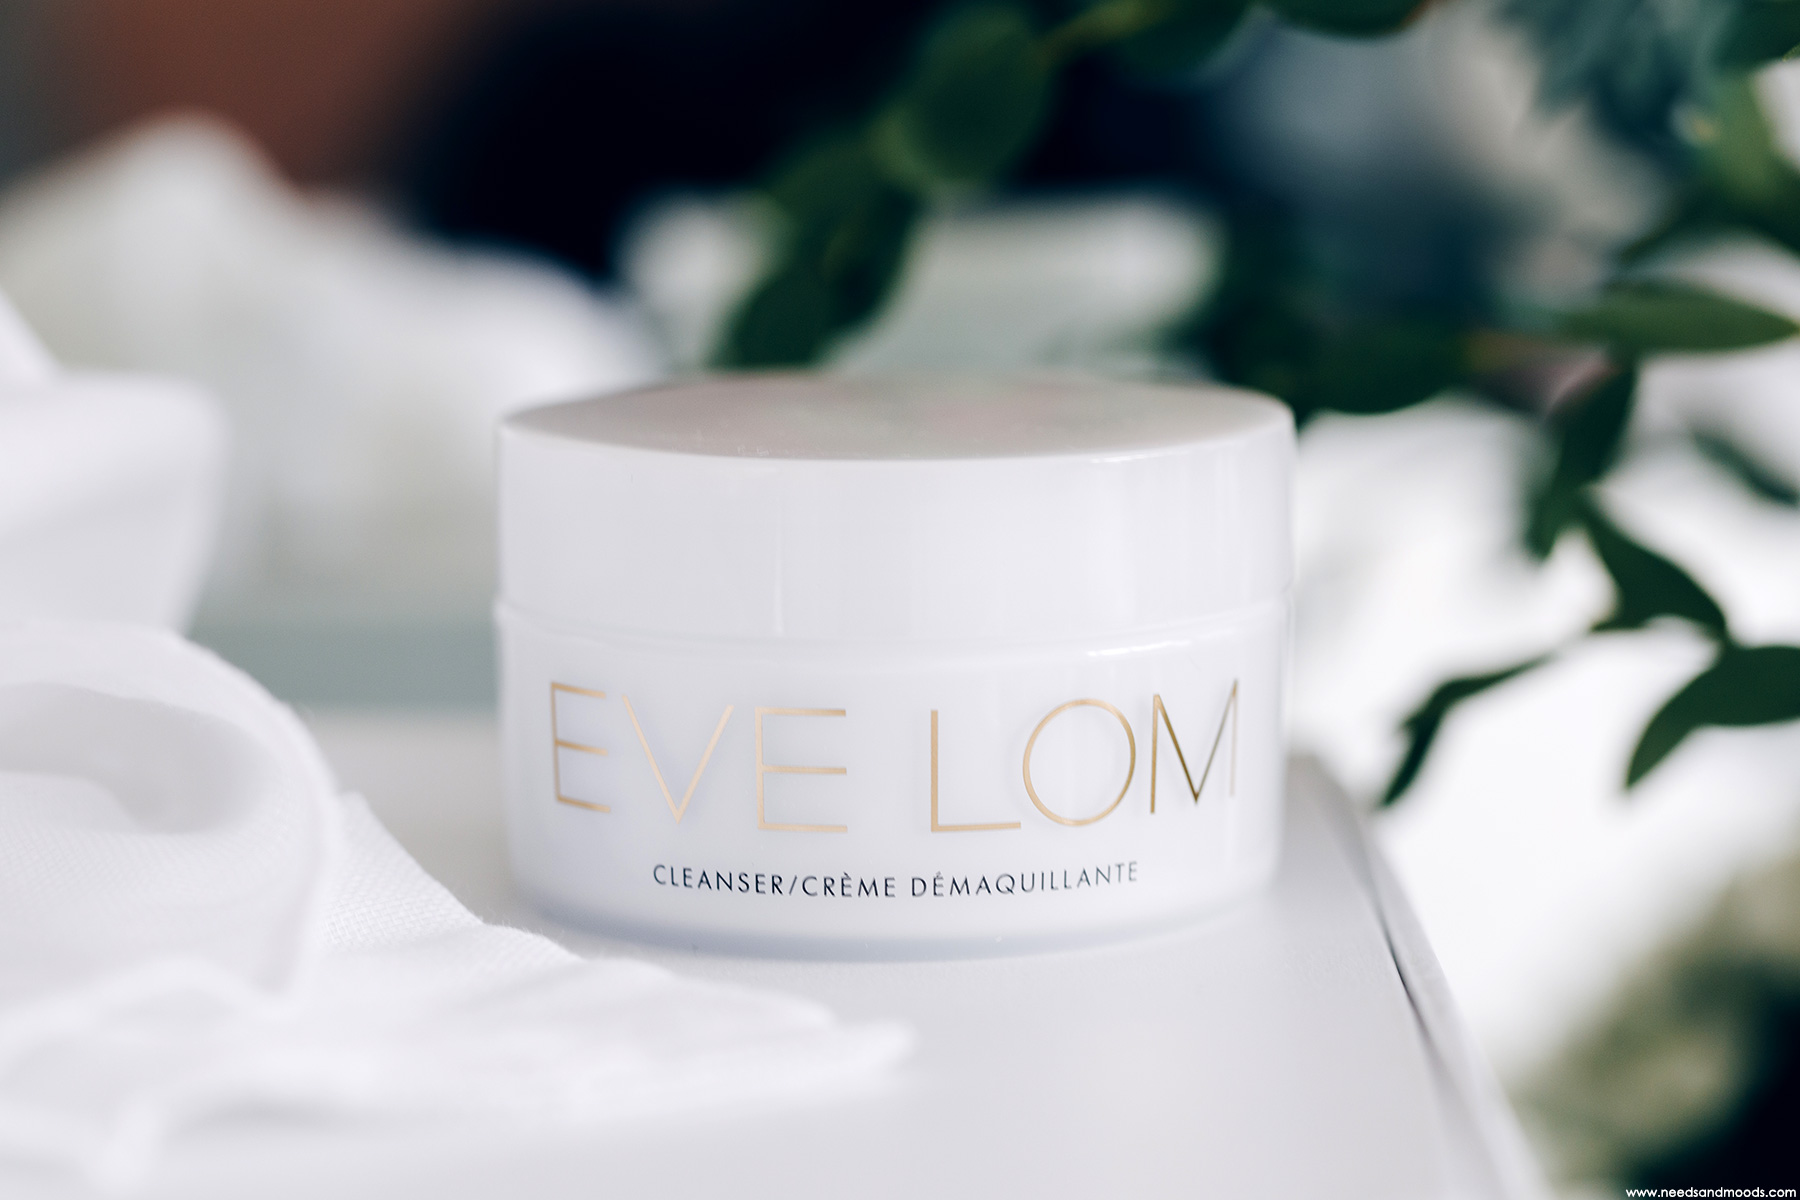 calendrier avent beauty expert eve lom creme demaquillante